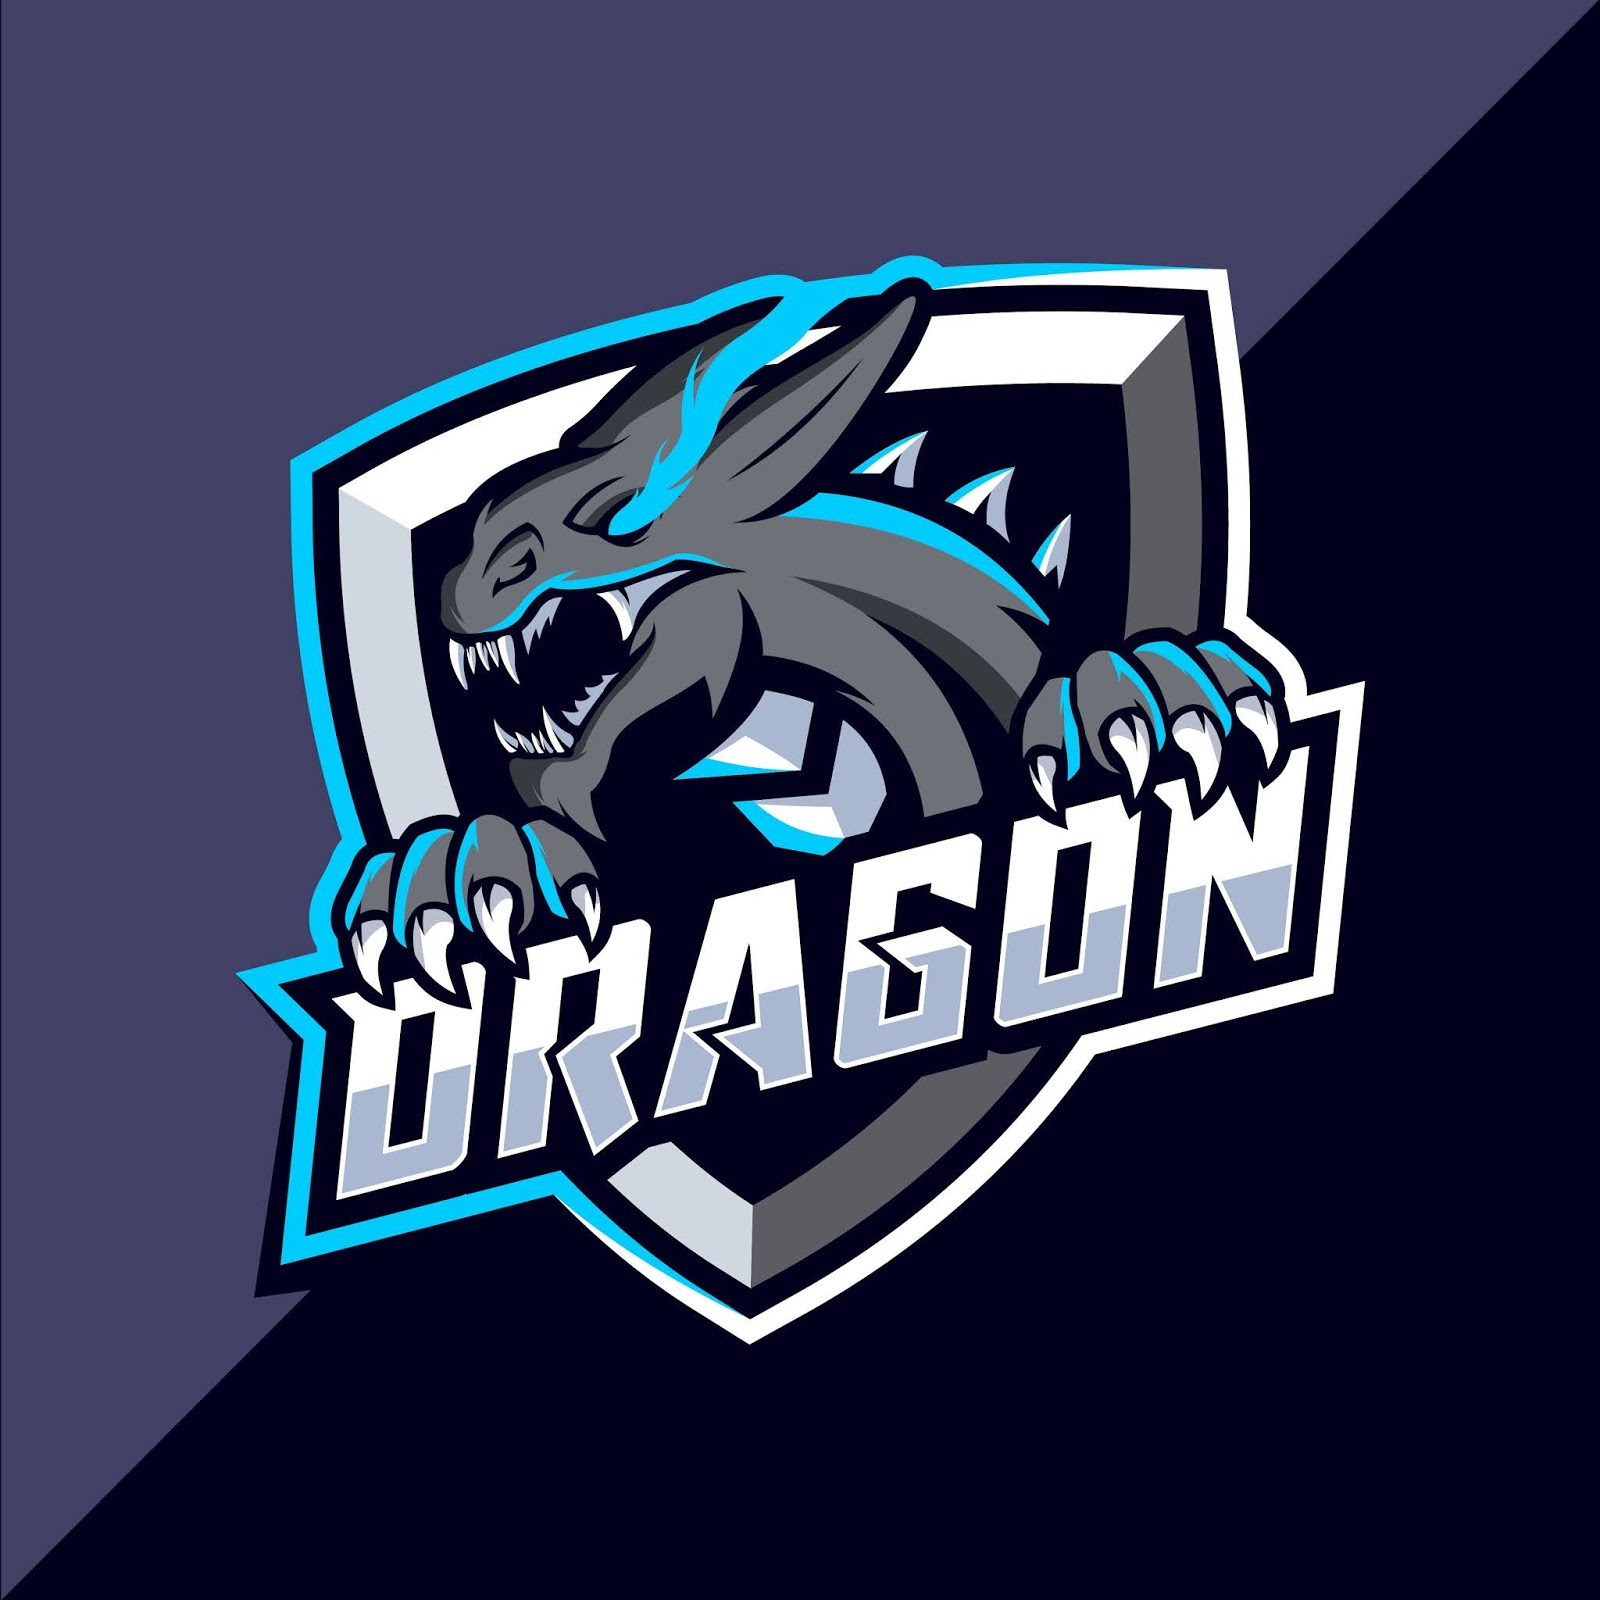 Dragon Mascot Esport Logo Design Free Download Vector CDR, AI, EPS and PNG Formats